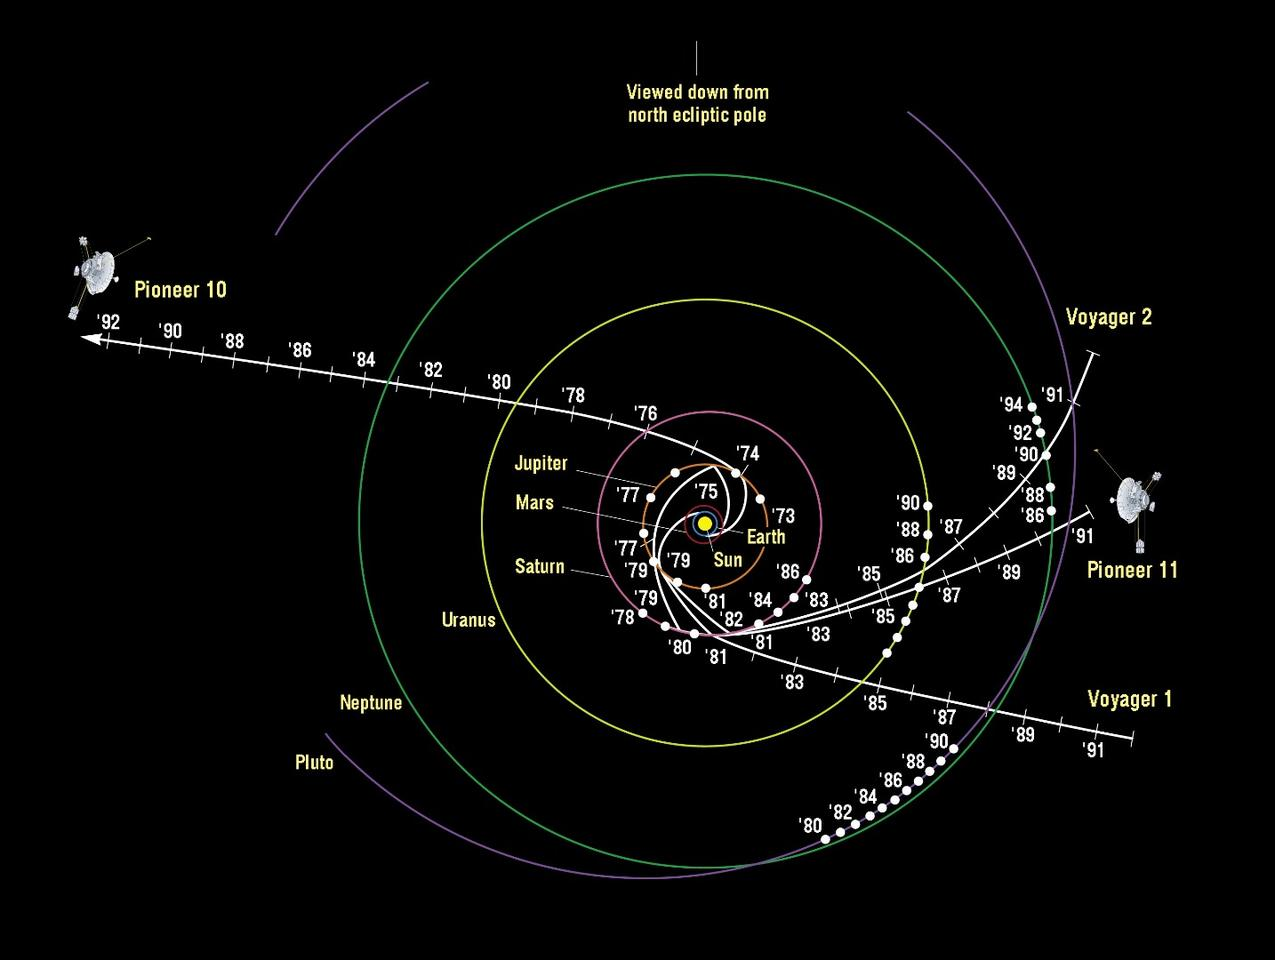 Pioneer and Voyager trajectories